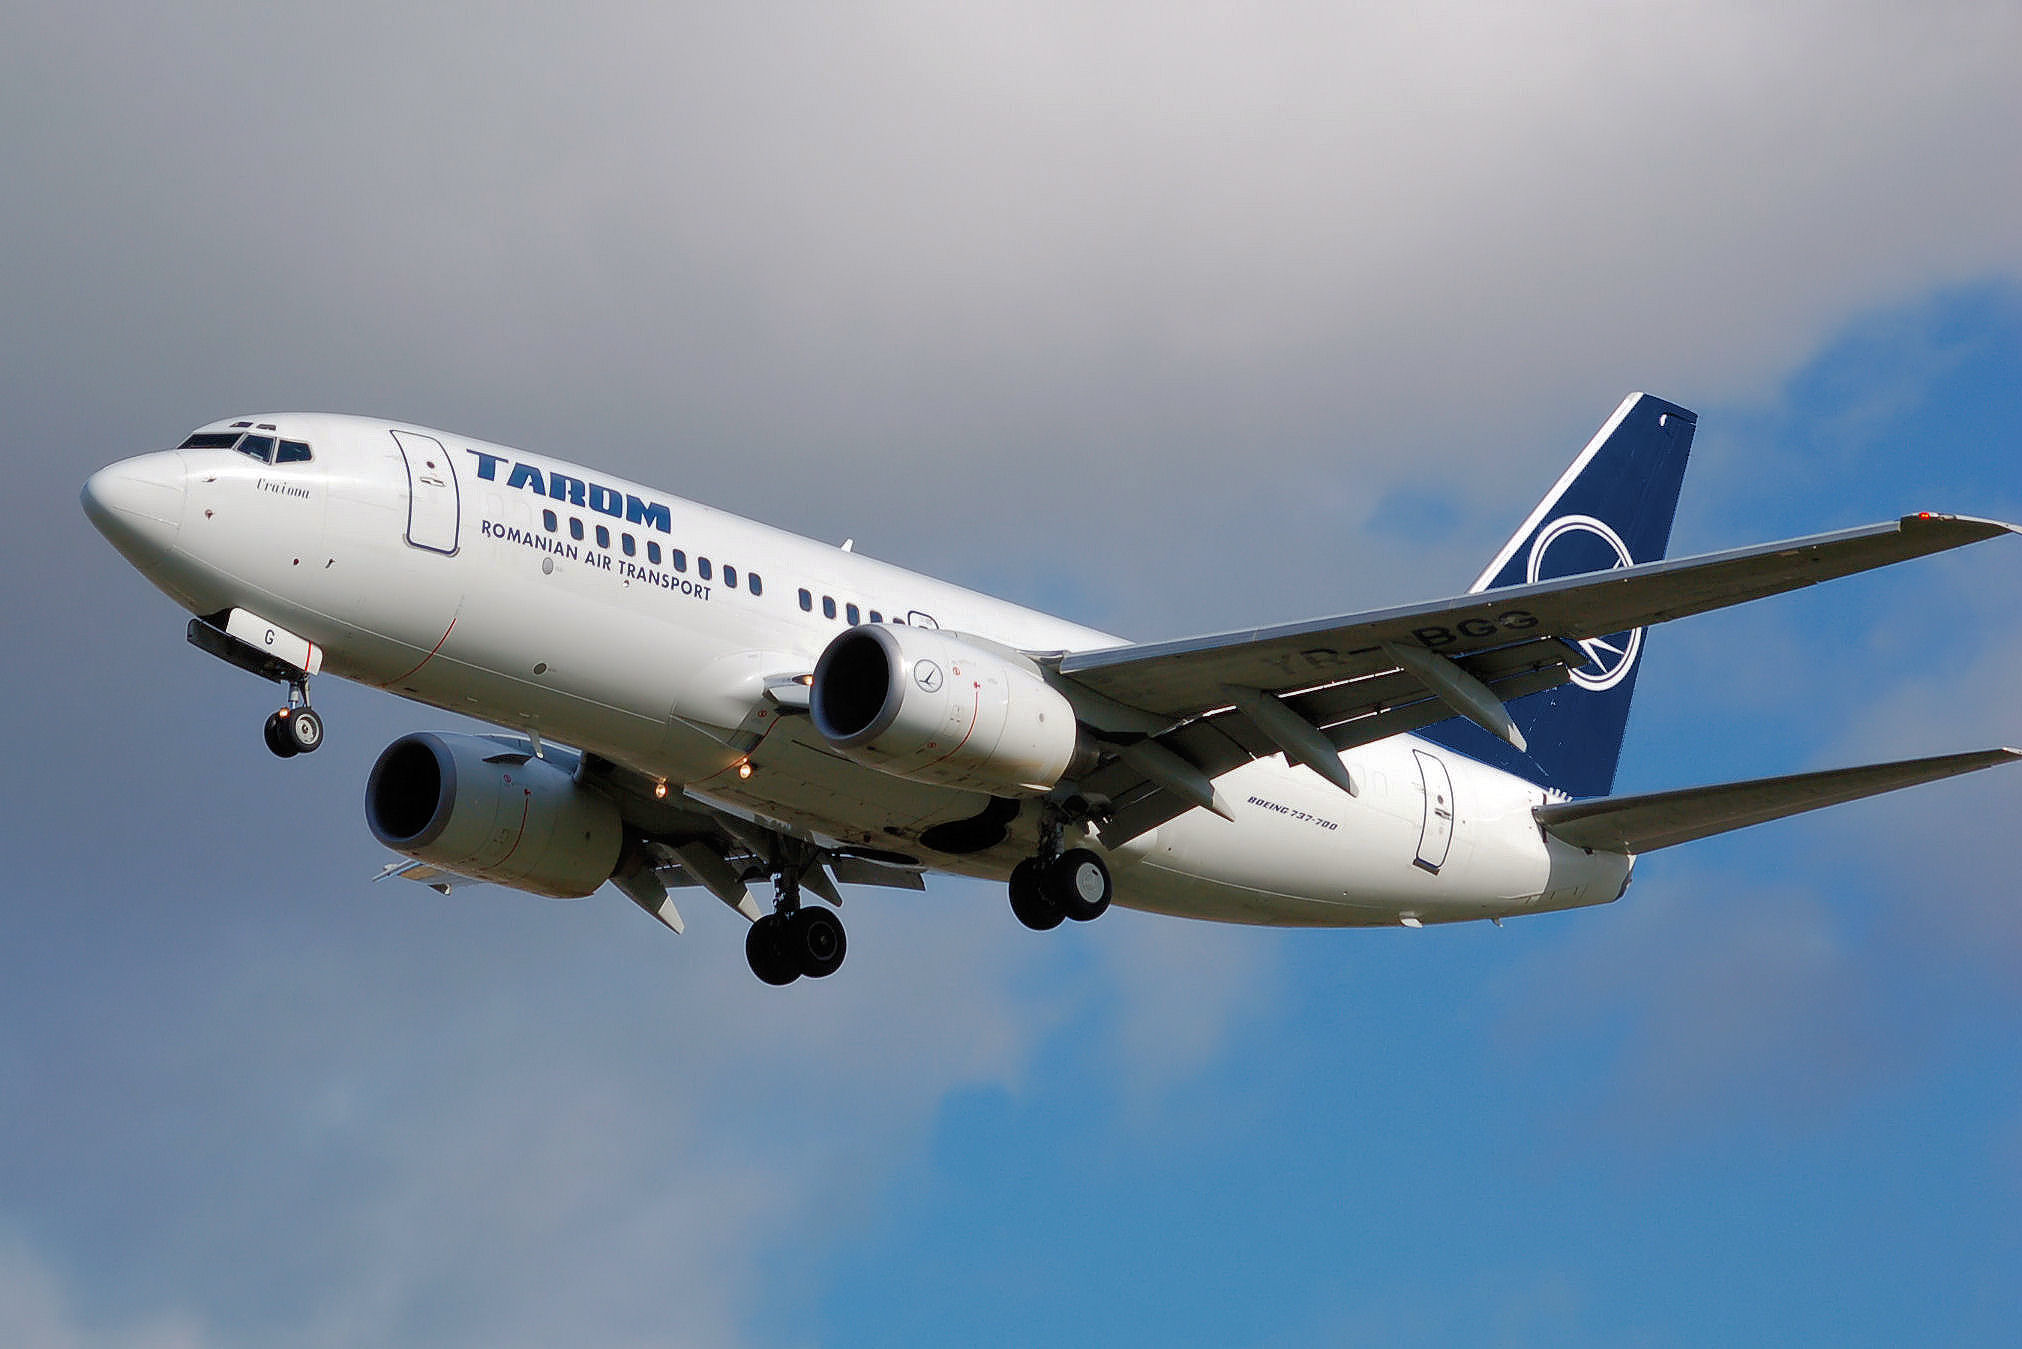 Romanian airline Tarom cut losses and increased its revenues in 2013